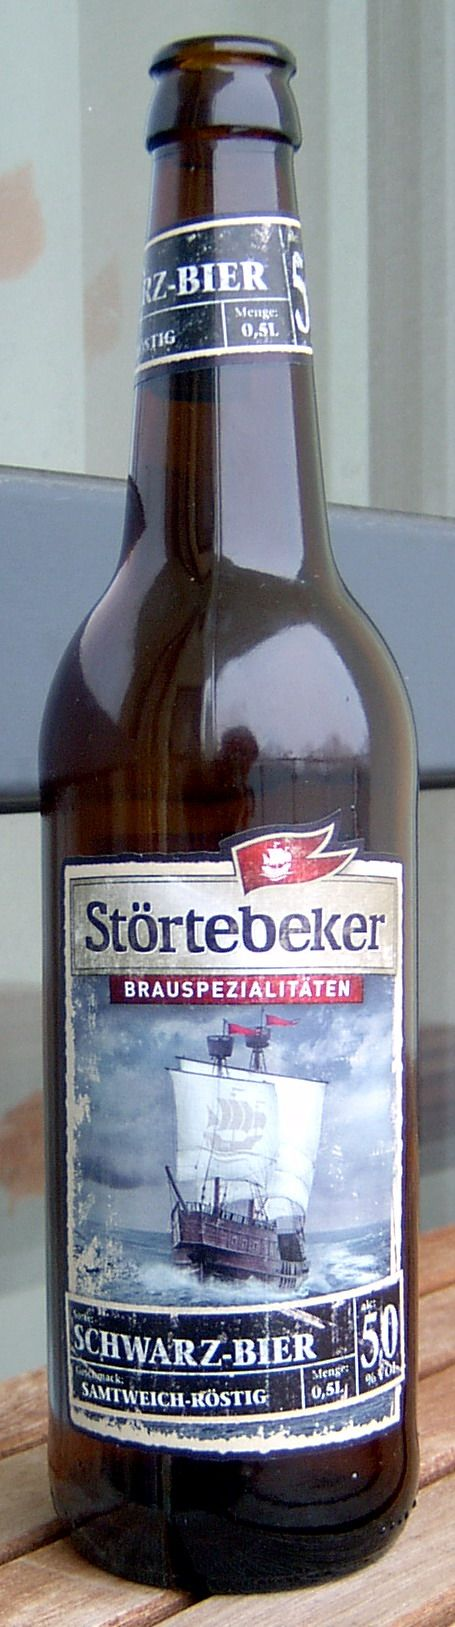 "This is my favorite German beer. Named after the pirate Klaus Störtebeker, a german Robin Hood of the North Sea. This is a Schwarzbier ""black beer"". http://www.oktoberfesthaus.com"